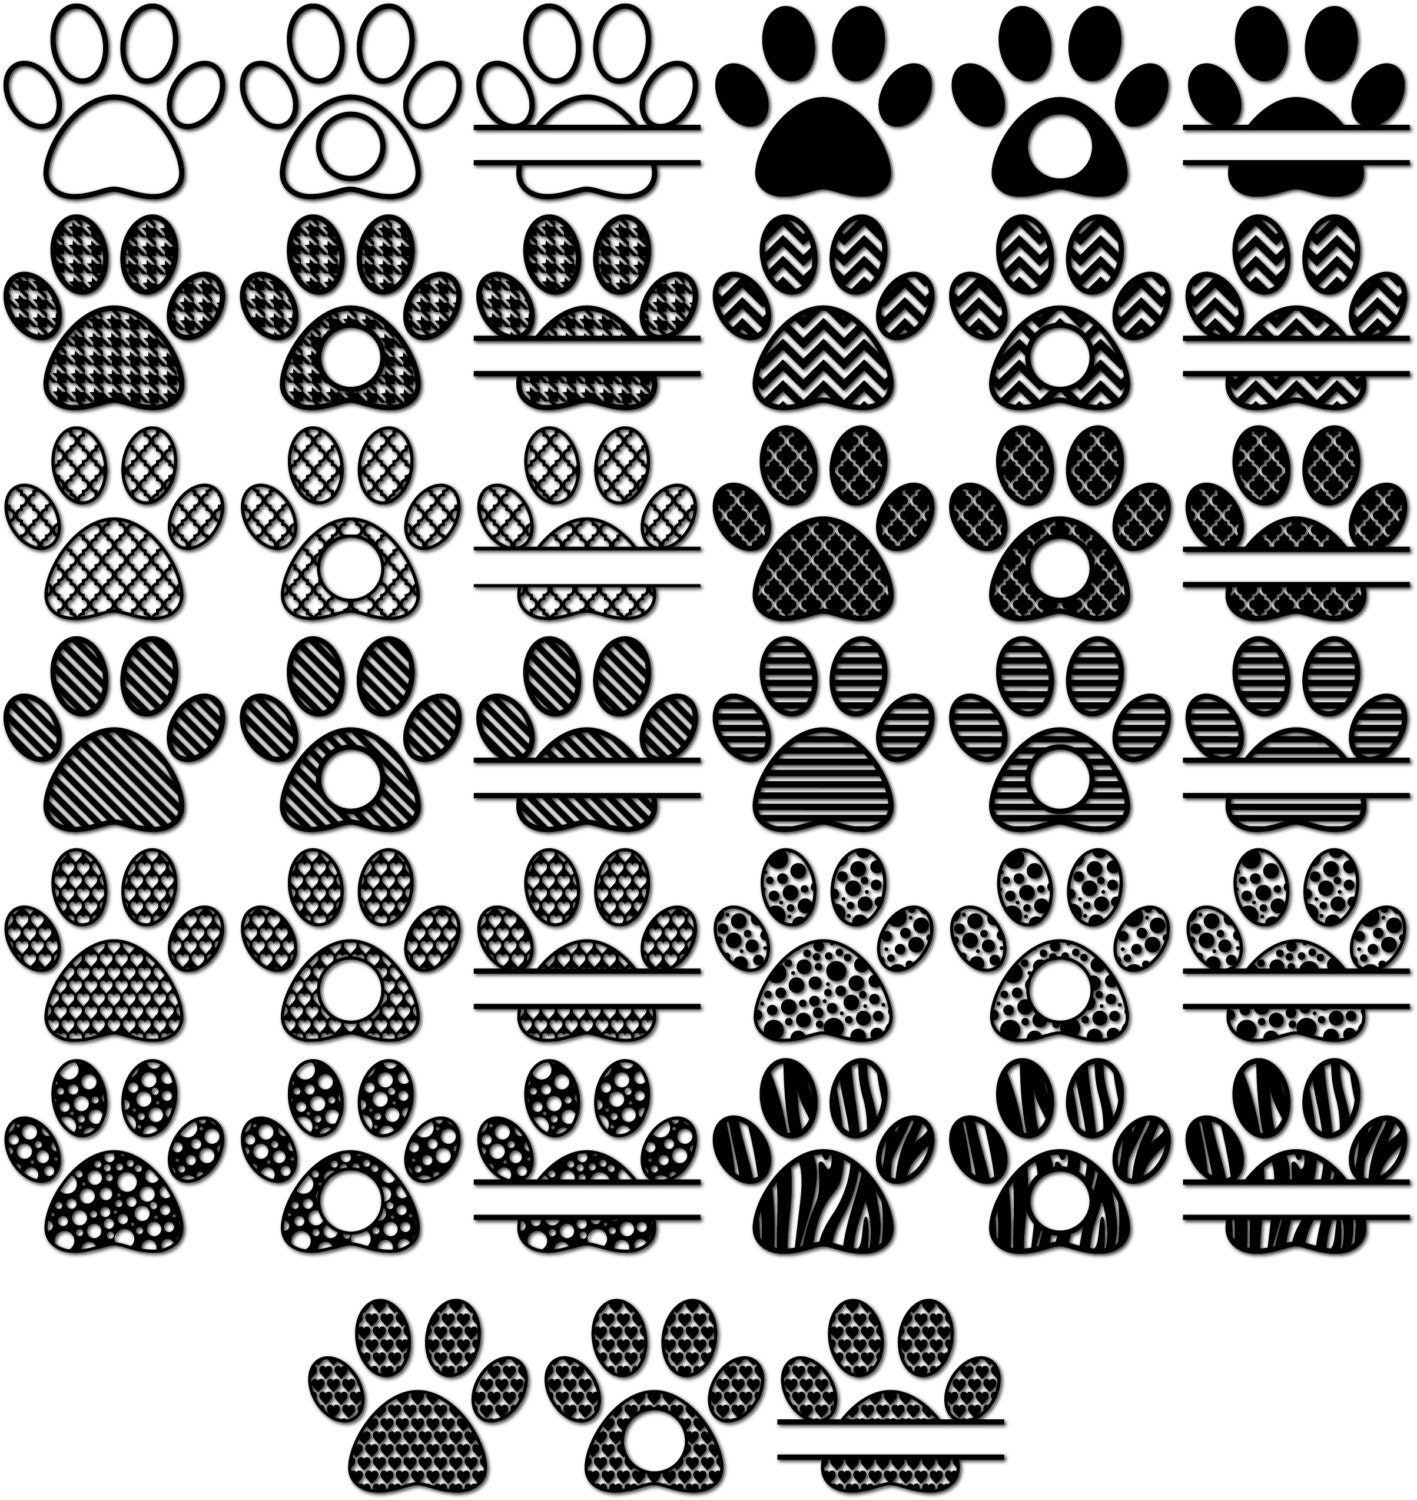 Watermark Ideas likewise Post free Printable Paw Patrol Badges 297277 in addition Paw Svg Monogram Frames For Vinyl moreover Monster Coloring Pages Free Printables as well Princess With Crown Vintage Large Image. on free create a watermark